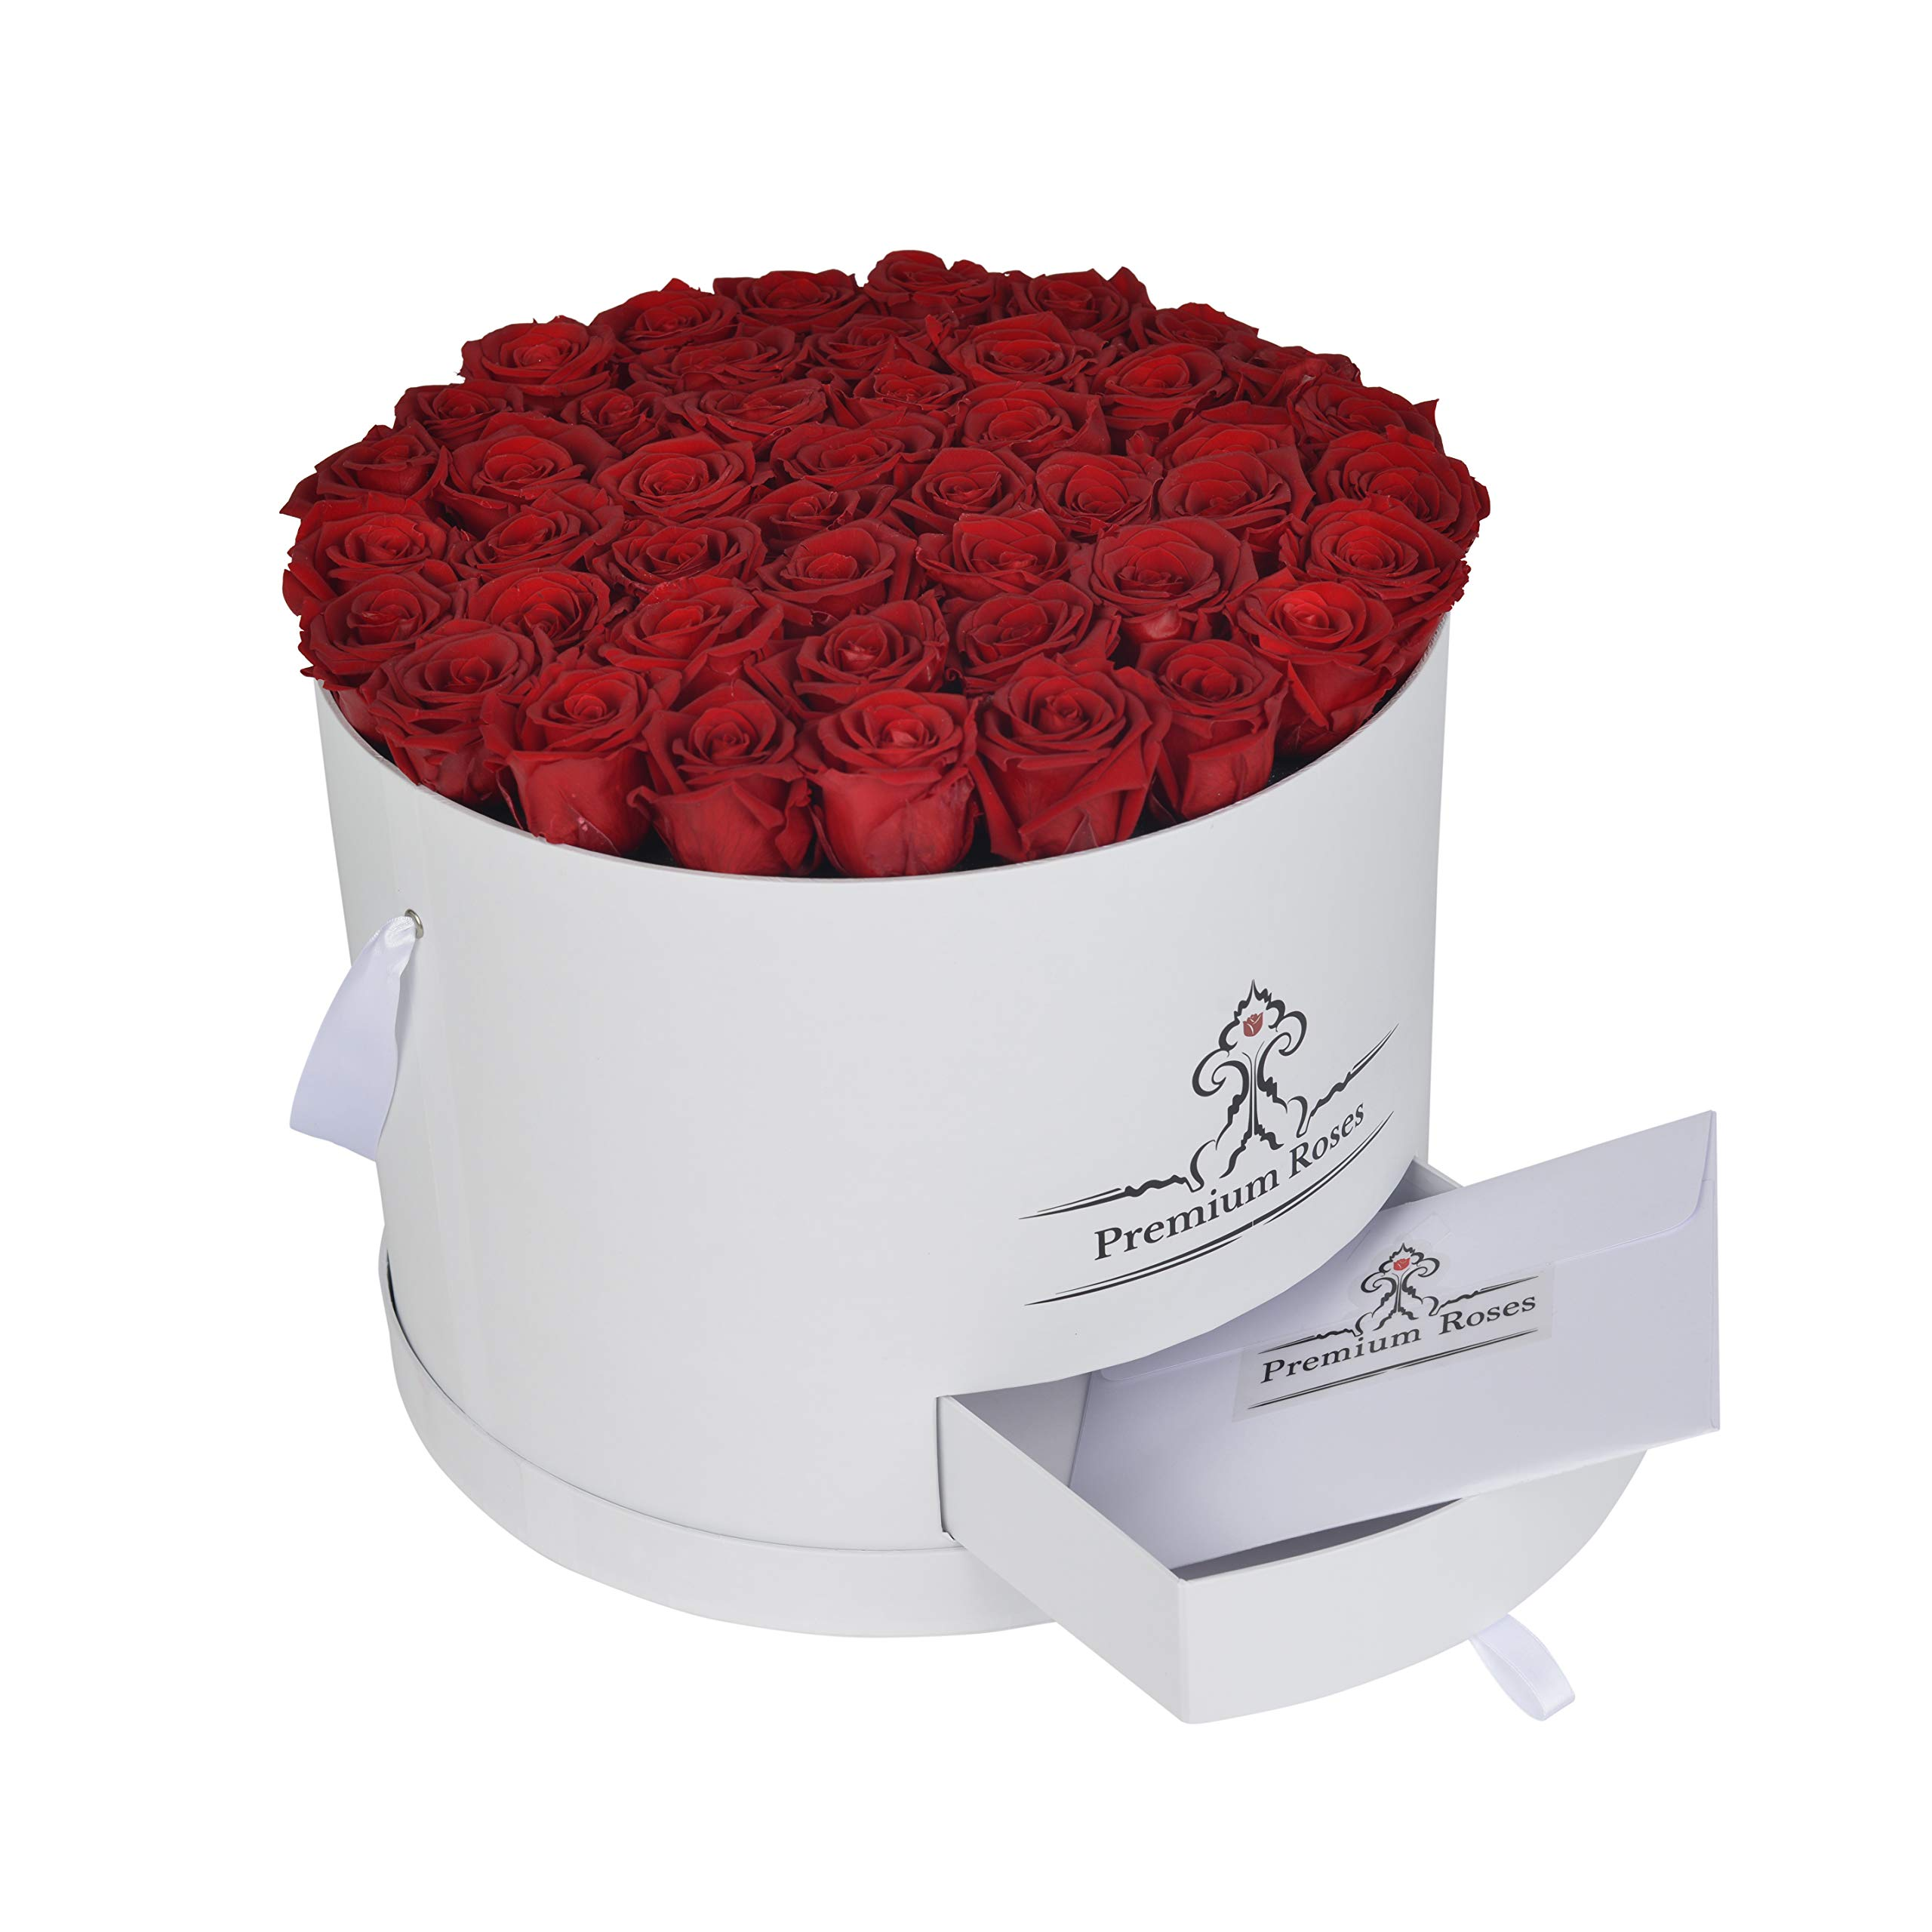 Premium Roses| Real Roses That Last a Year | Fresh Flowers| Roses in a Box (White Box, Large) by Premium Roses